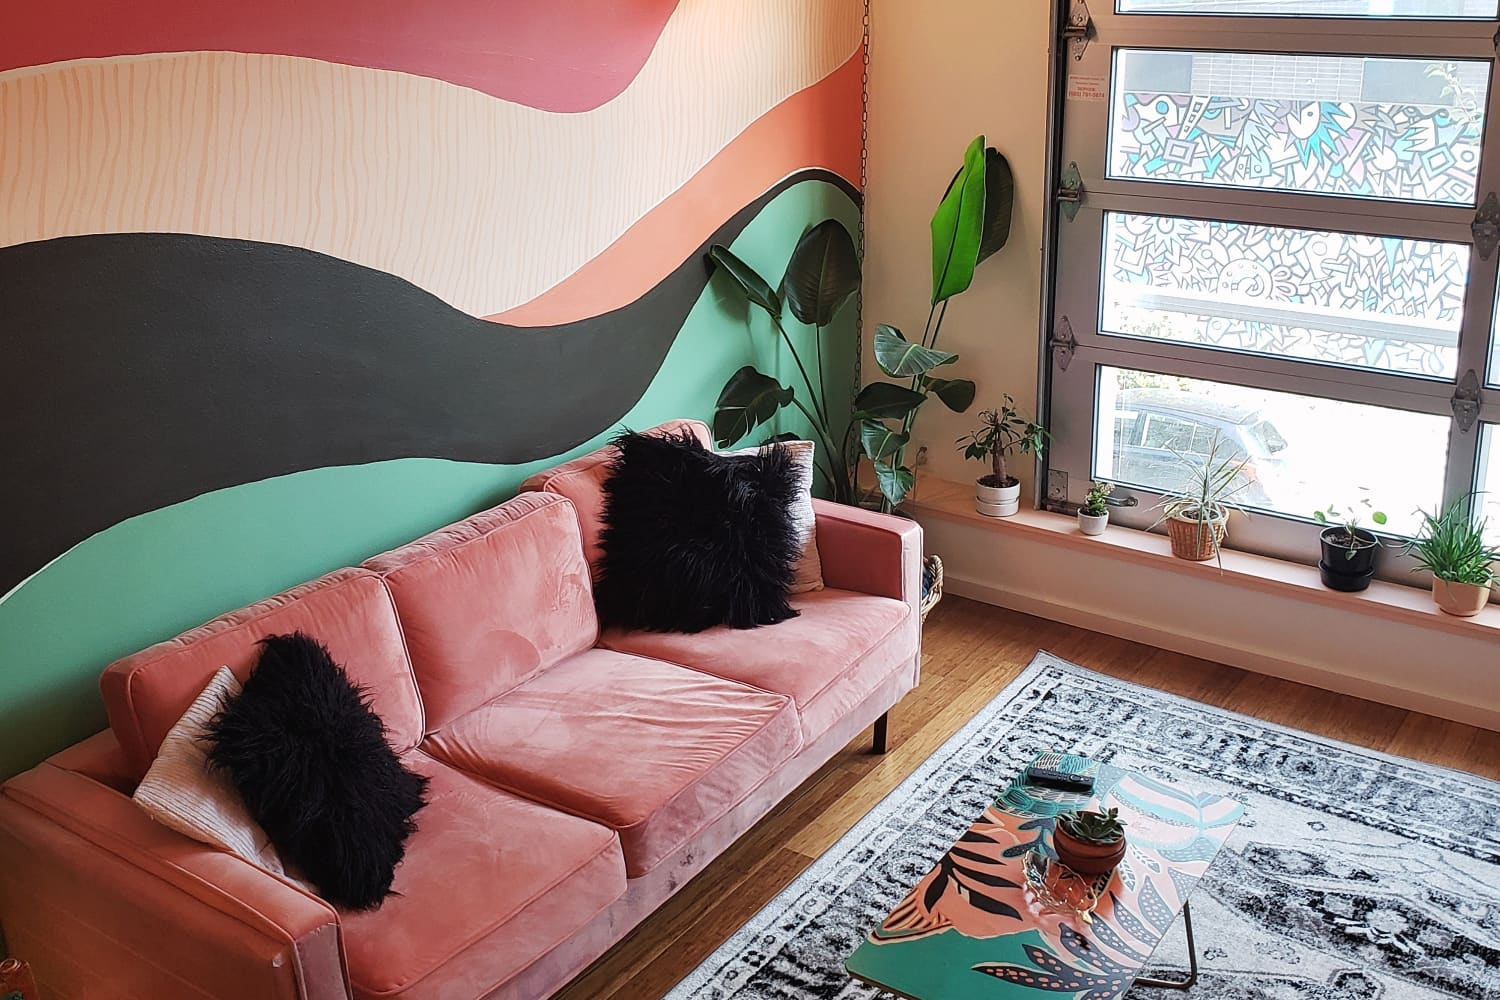 A Colorful Portland Condo Has an Incredible 6′ by 6′ DIY Plant Wall